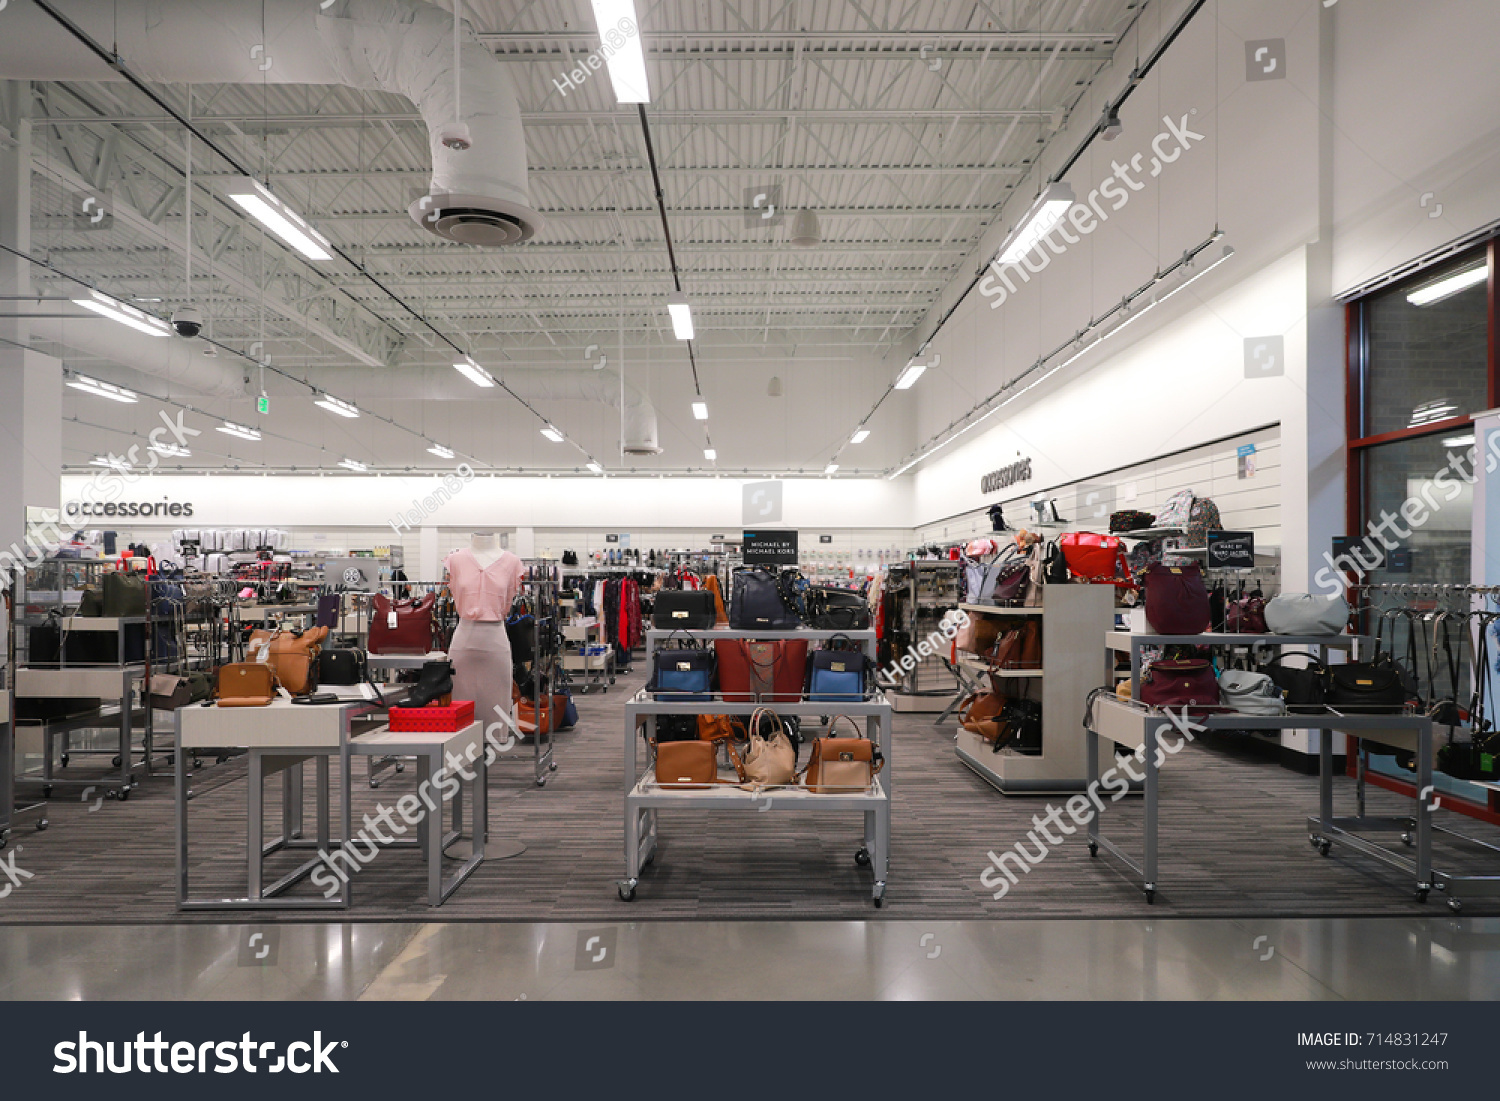 Nordstrom Rack Allentown PA USA September Stock Photo (Edit Now ... c029b2c8d789